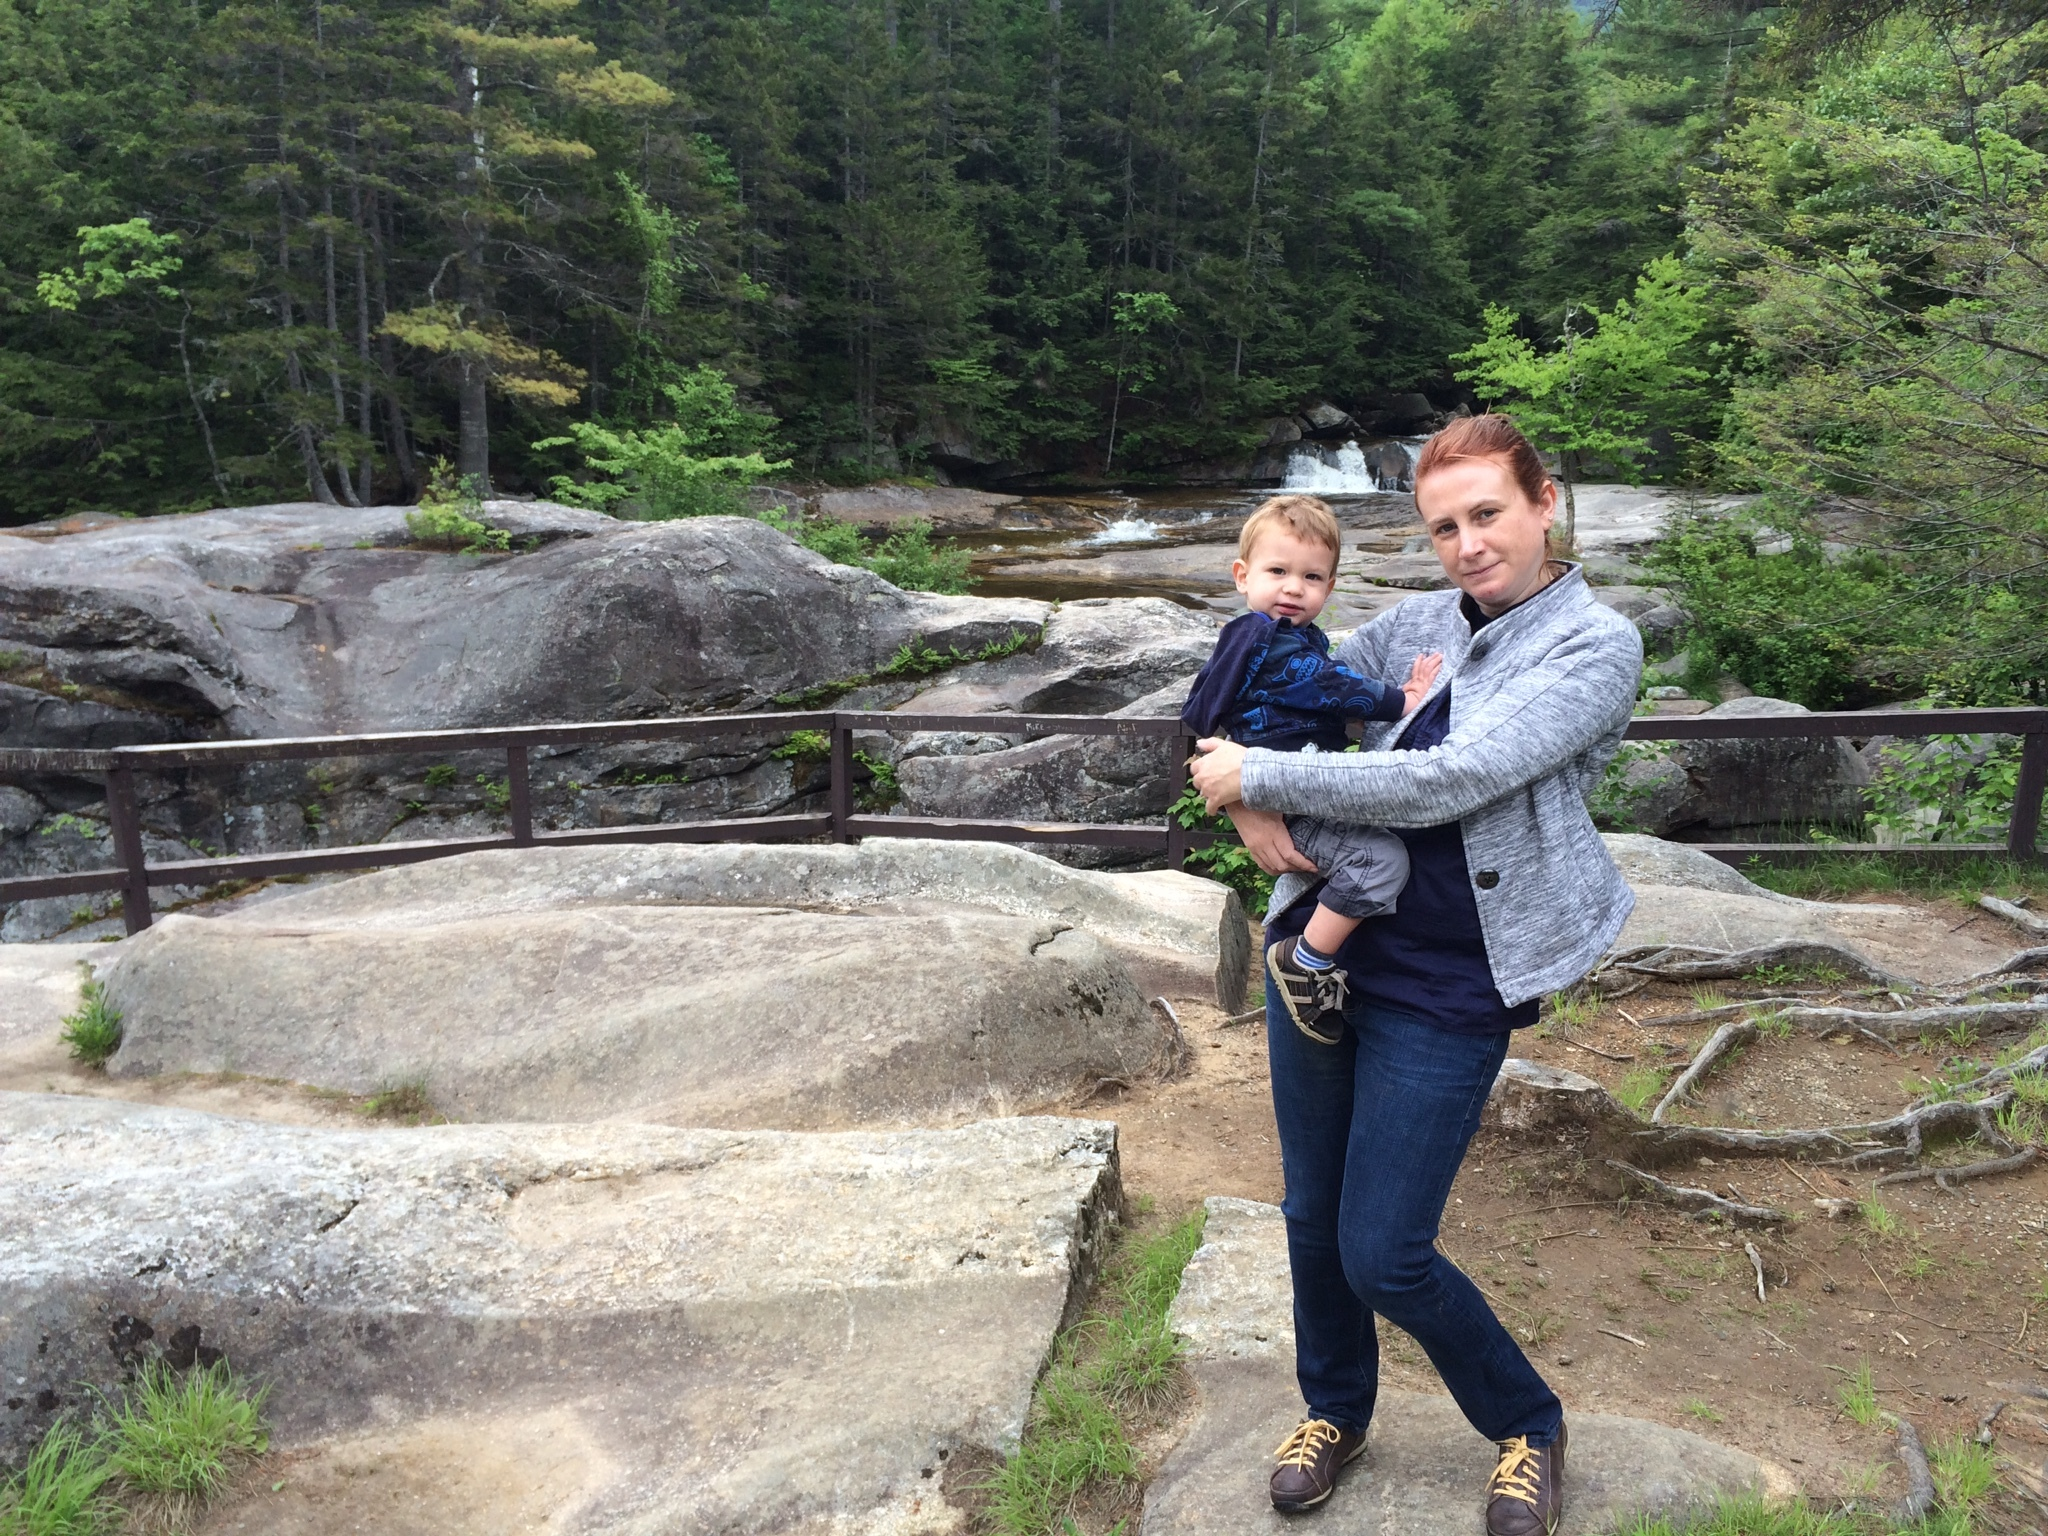 Lovely picture, right? Cute kid. Cure jacket. Lovely falls and rocks in the background. But, look! A ponytail and bad posture! Photo taken at Screw Auger Falls, in Grafton, Maine.